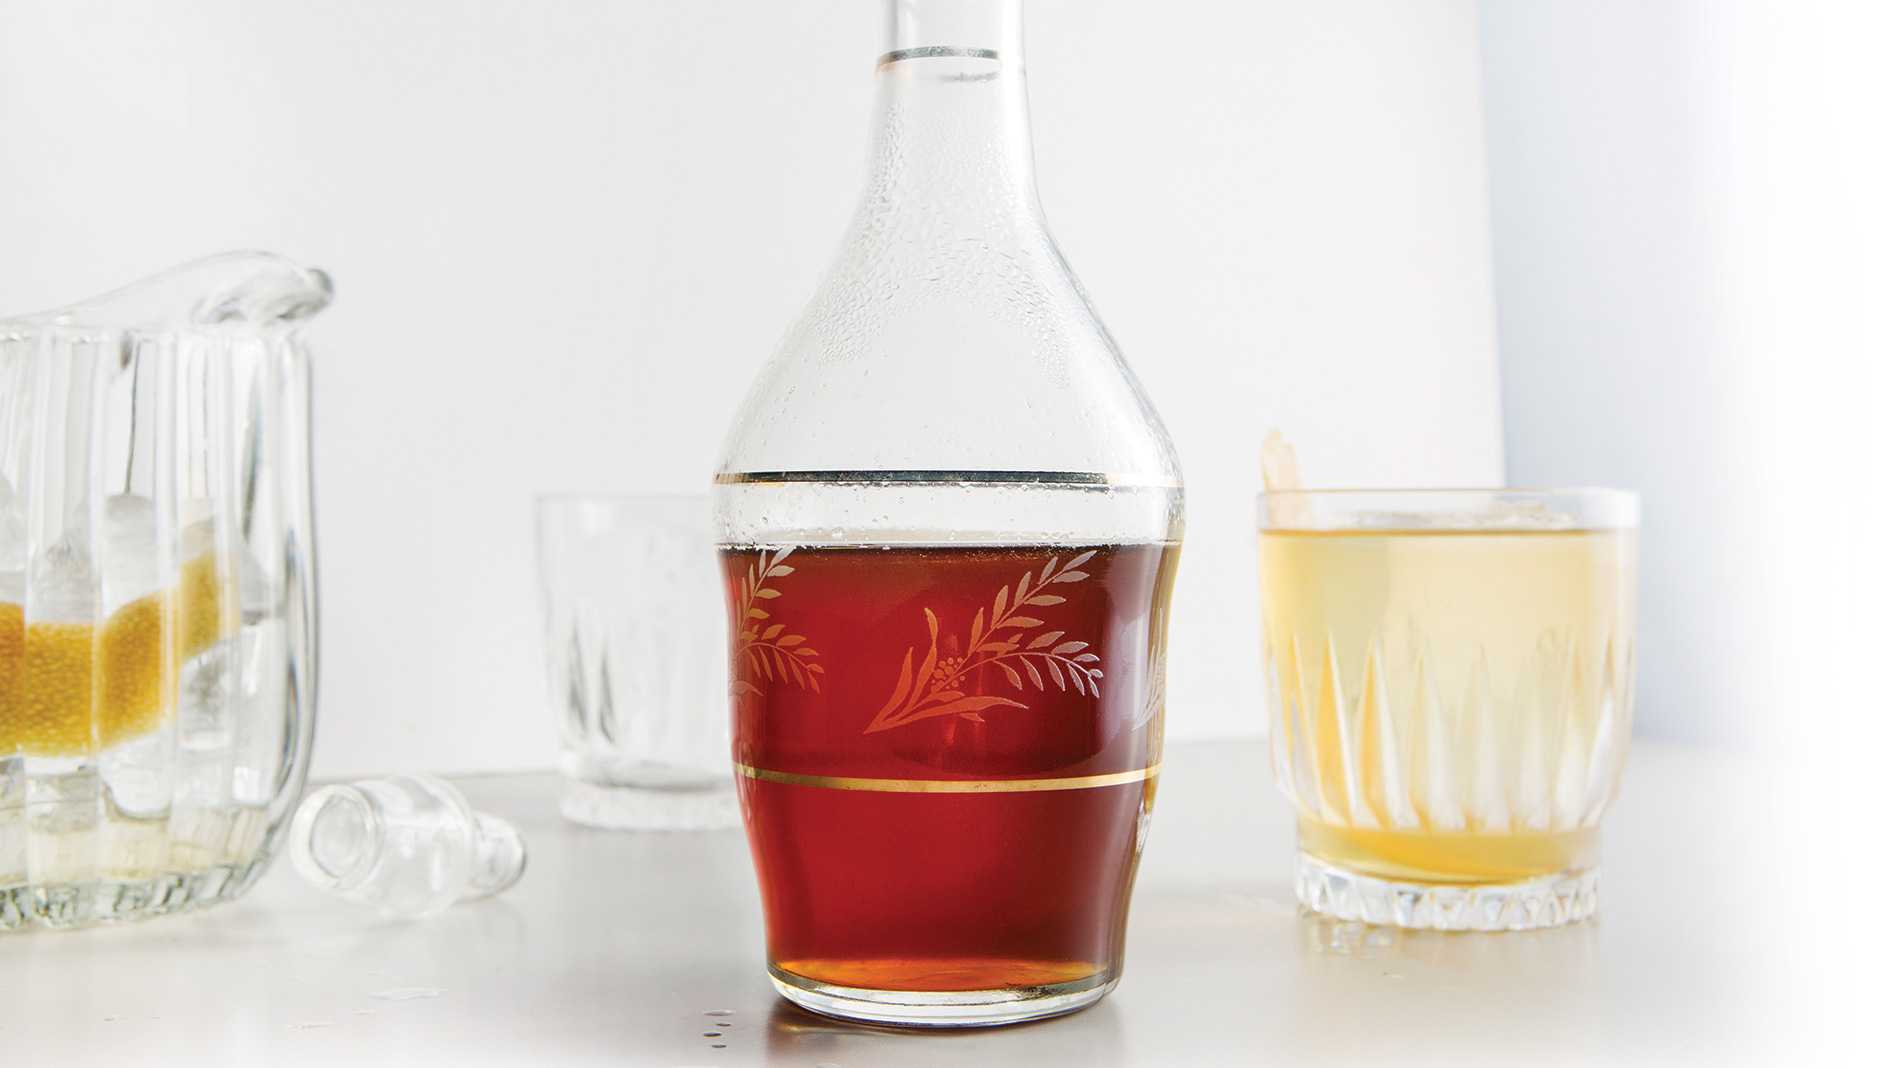 beer syrup made from a hoppy beer and sugar